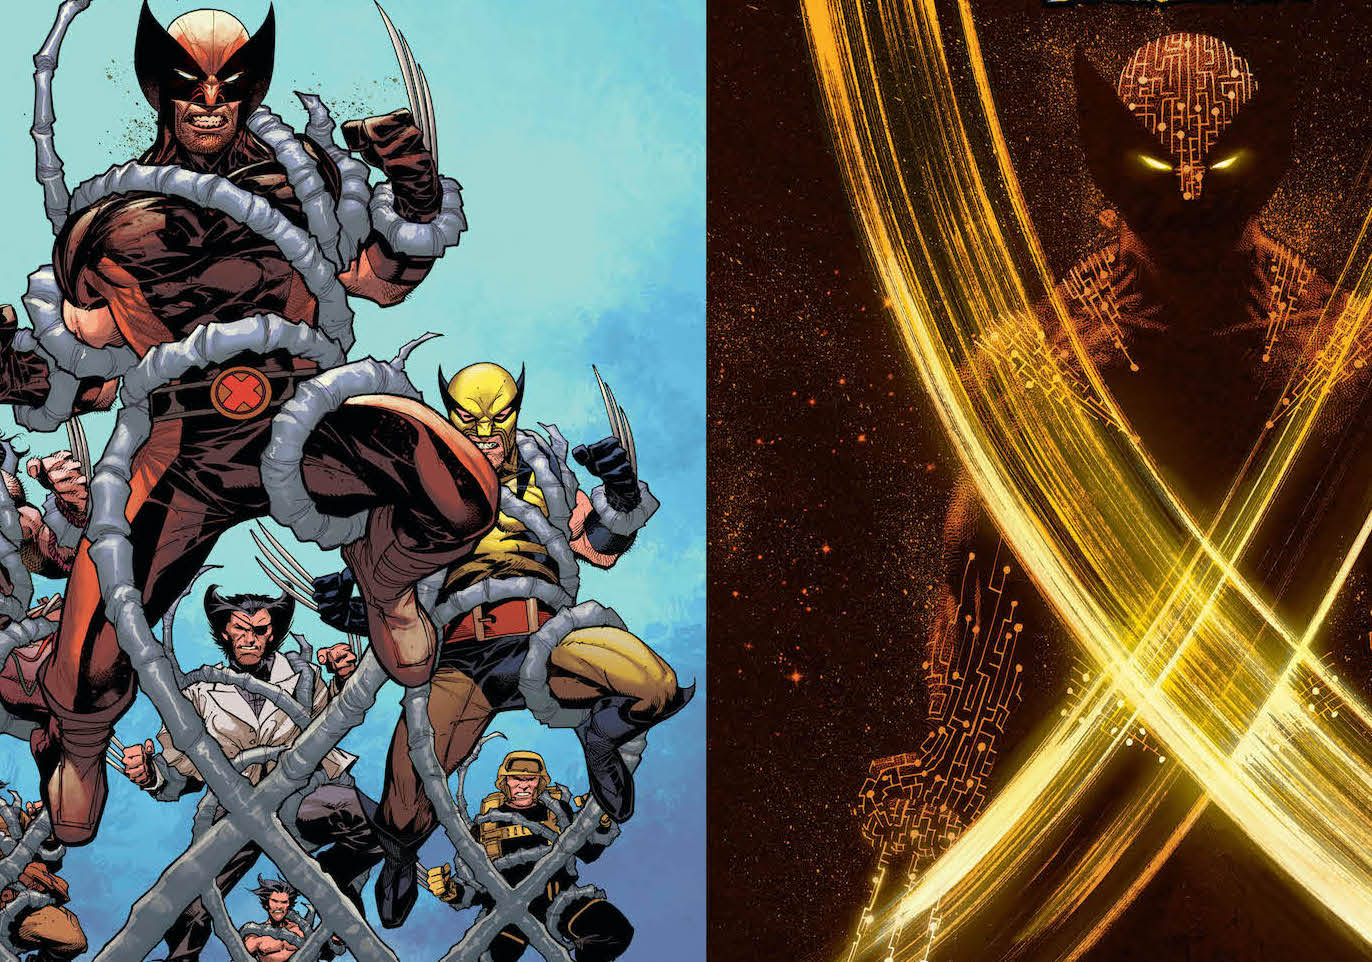 Marvel teases 'X Deaths of Wolverine' and 'X Lives of Wolverine'